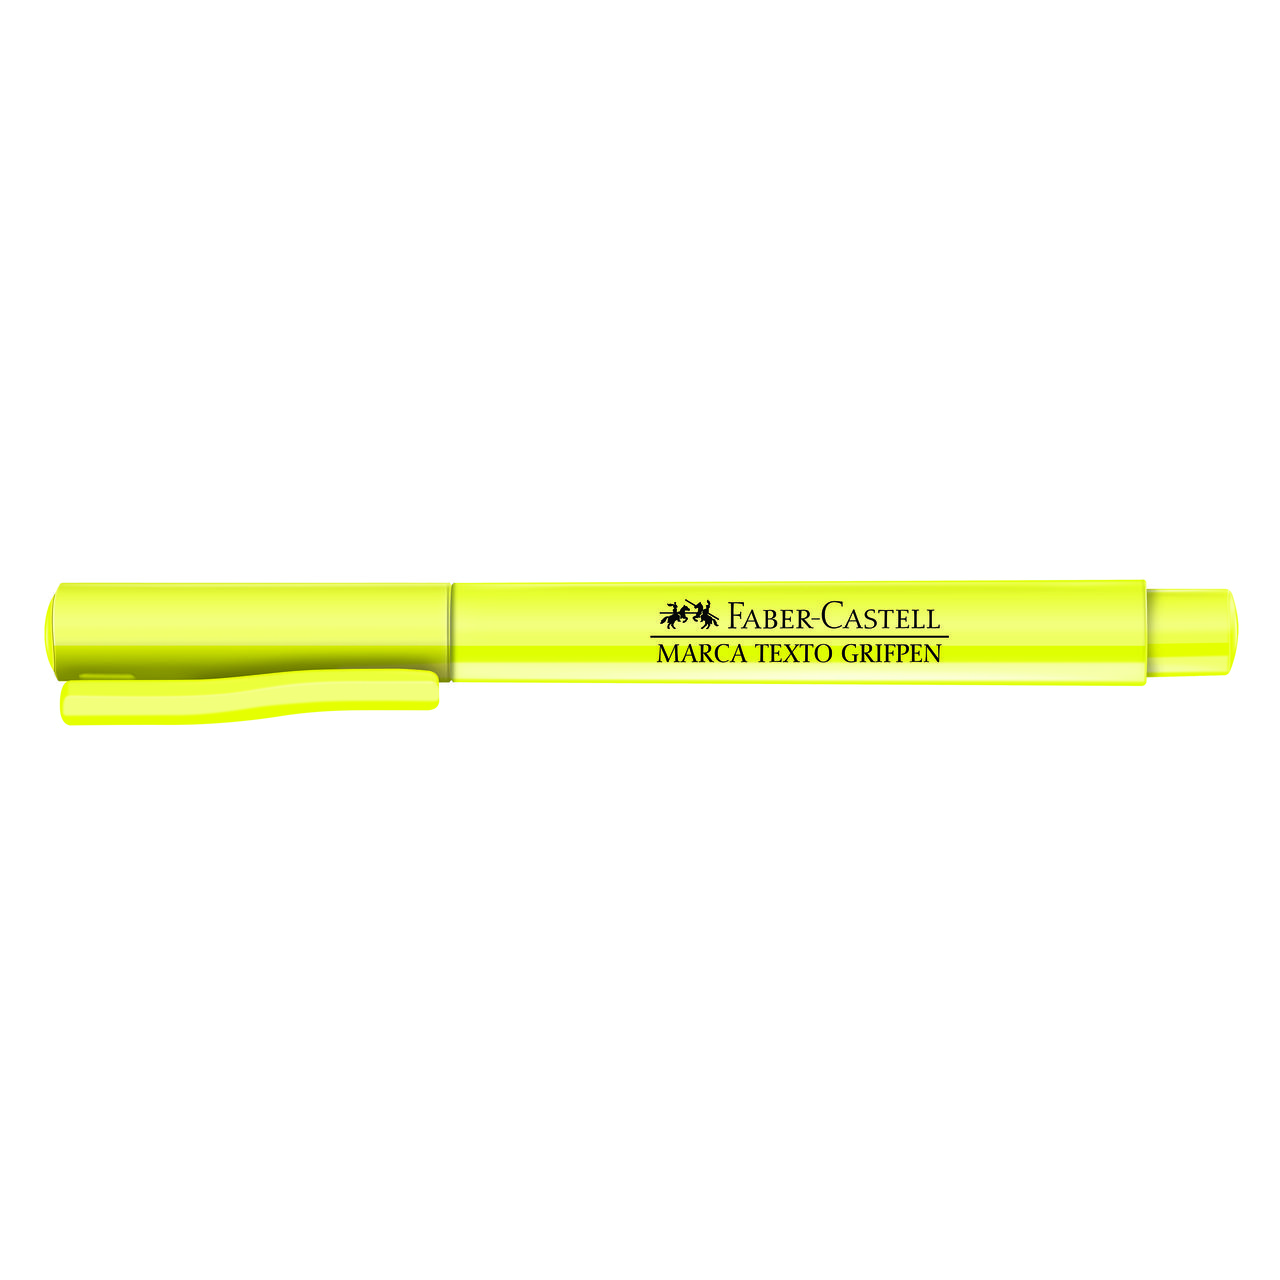 Marca texto amarelo Faber-Castell